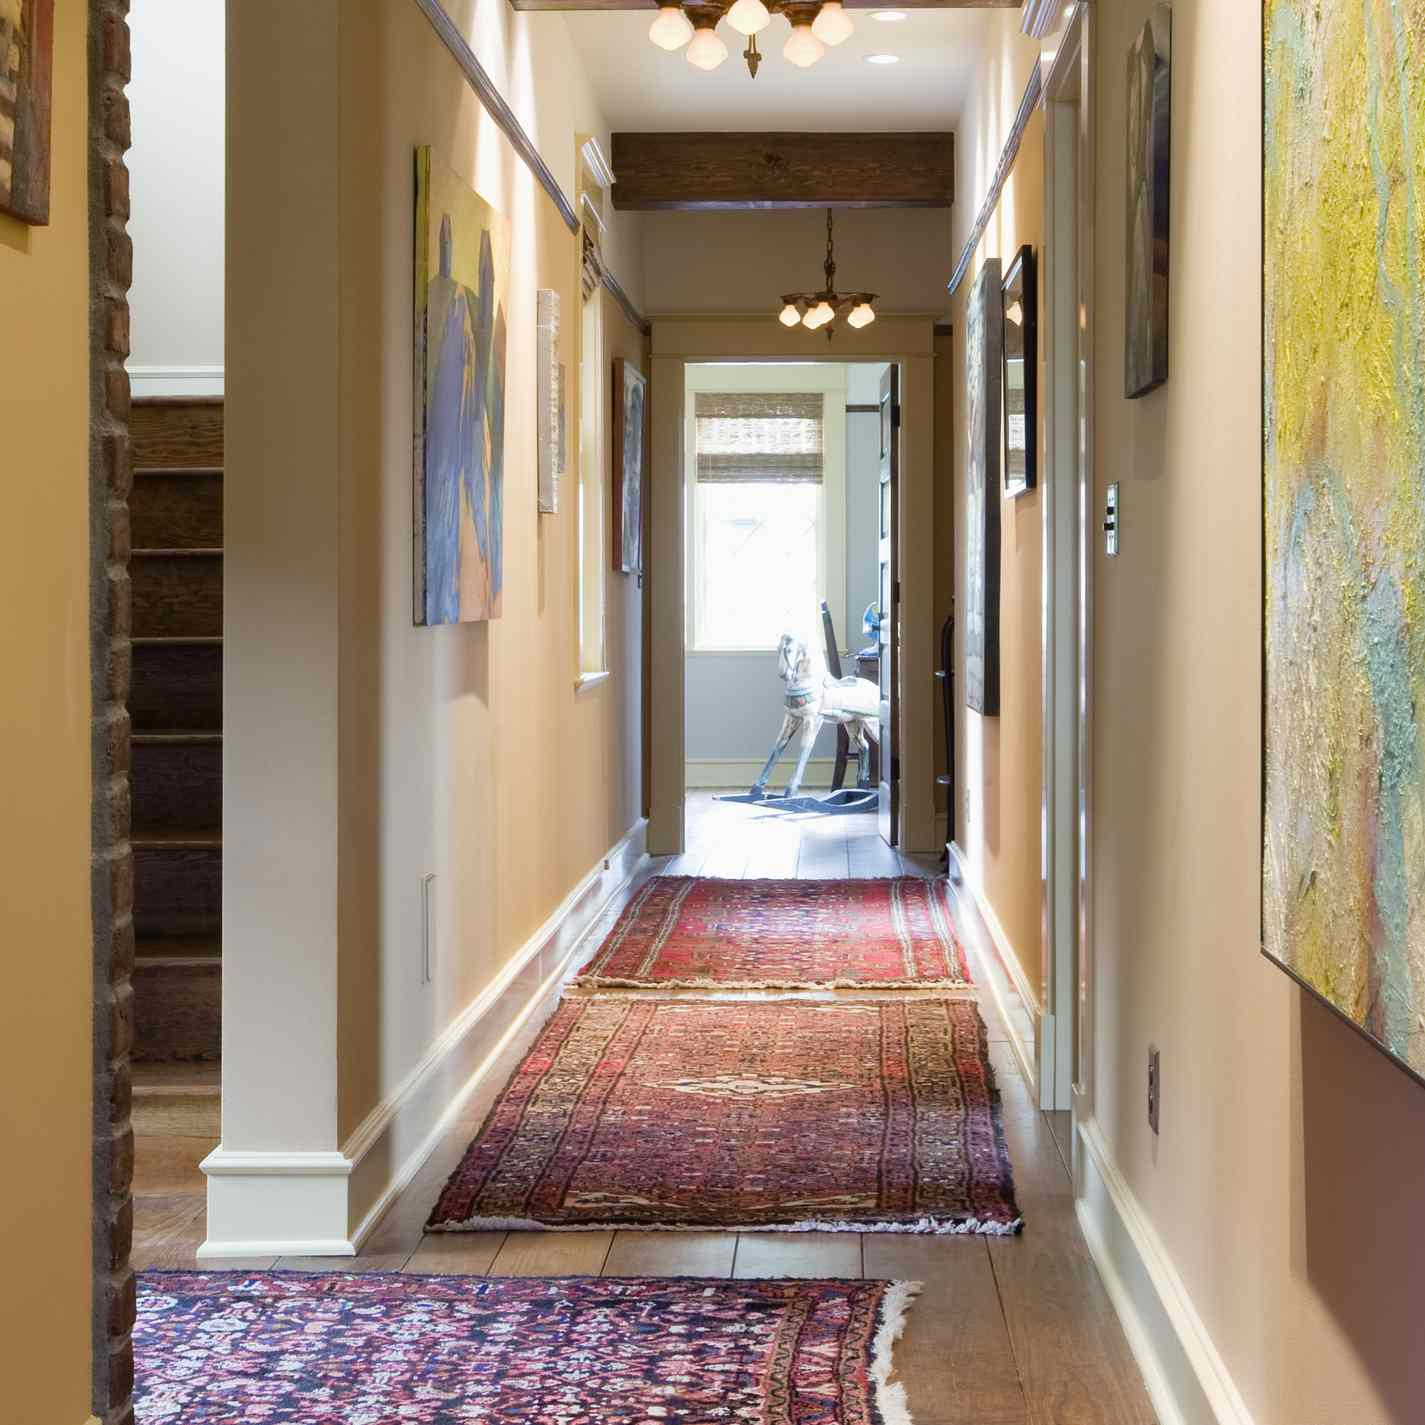 a long hallway with rugs and artwork